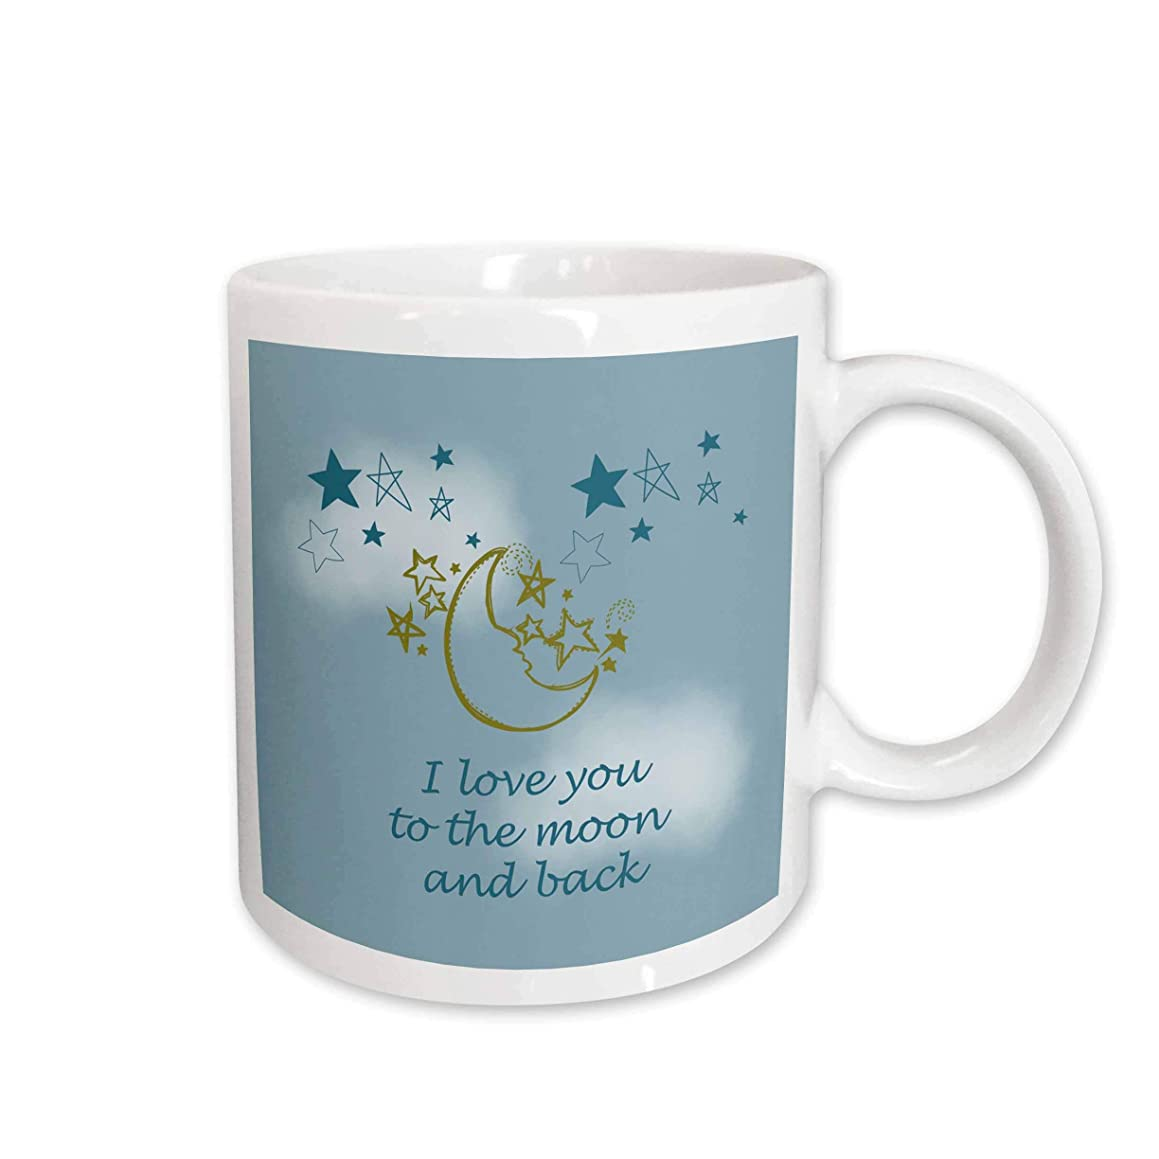 3dRose I Love You to The Moon and Back Ceramic Mug, 15-Ounce